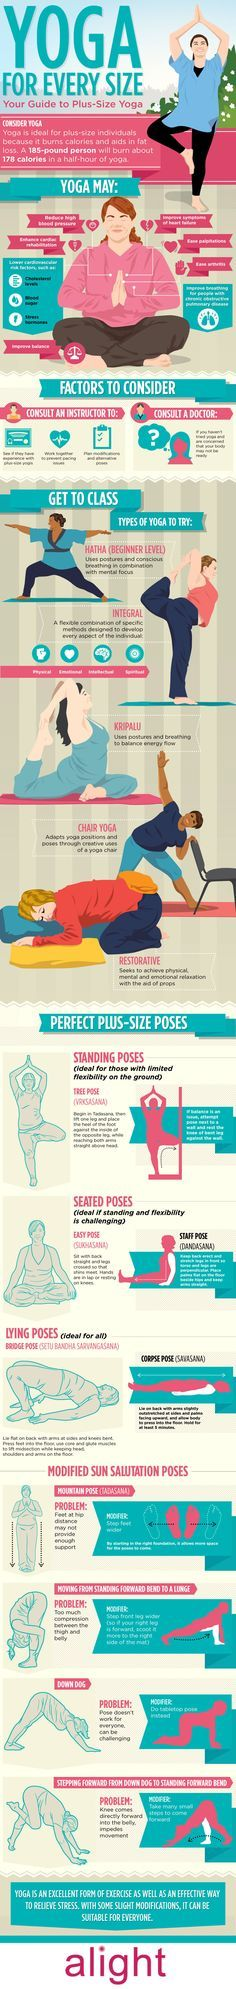 Yoga for Every Size- Plus Size ladies, this is an AMAZING help for you if you are looking to start yoga. Modification & moderation are key! | theprettyplus.com